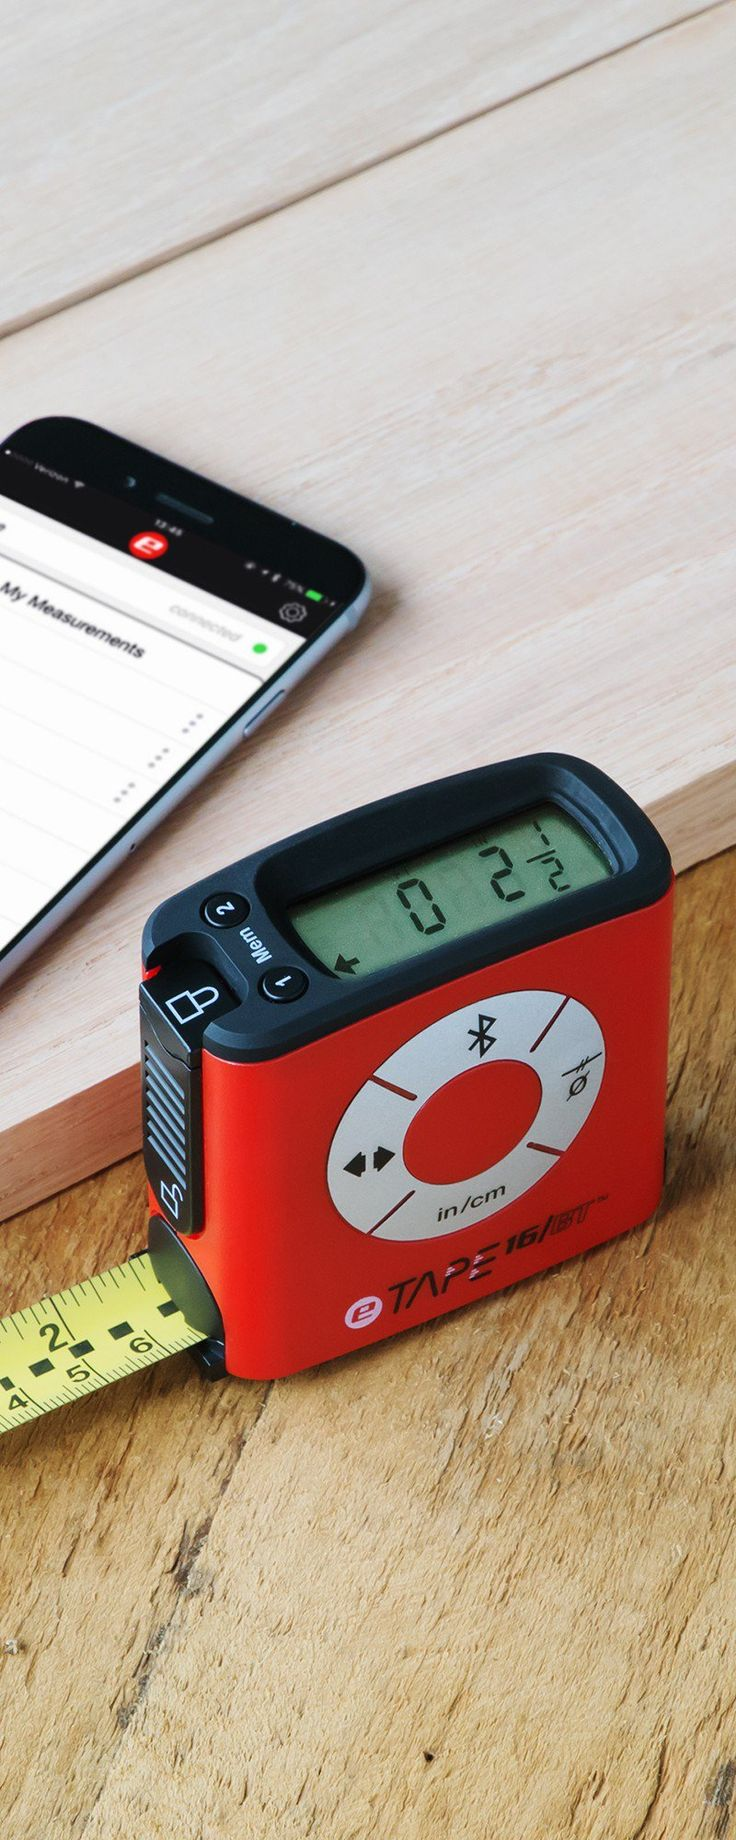 eTape16, discovered by The Grommet, is an easy-to-use physical measuring tape with digital readouts and functions.